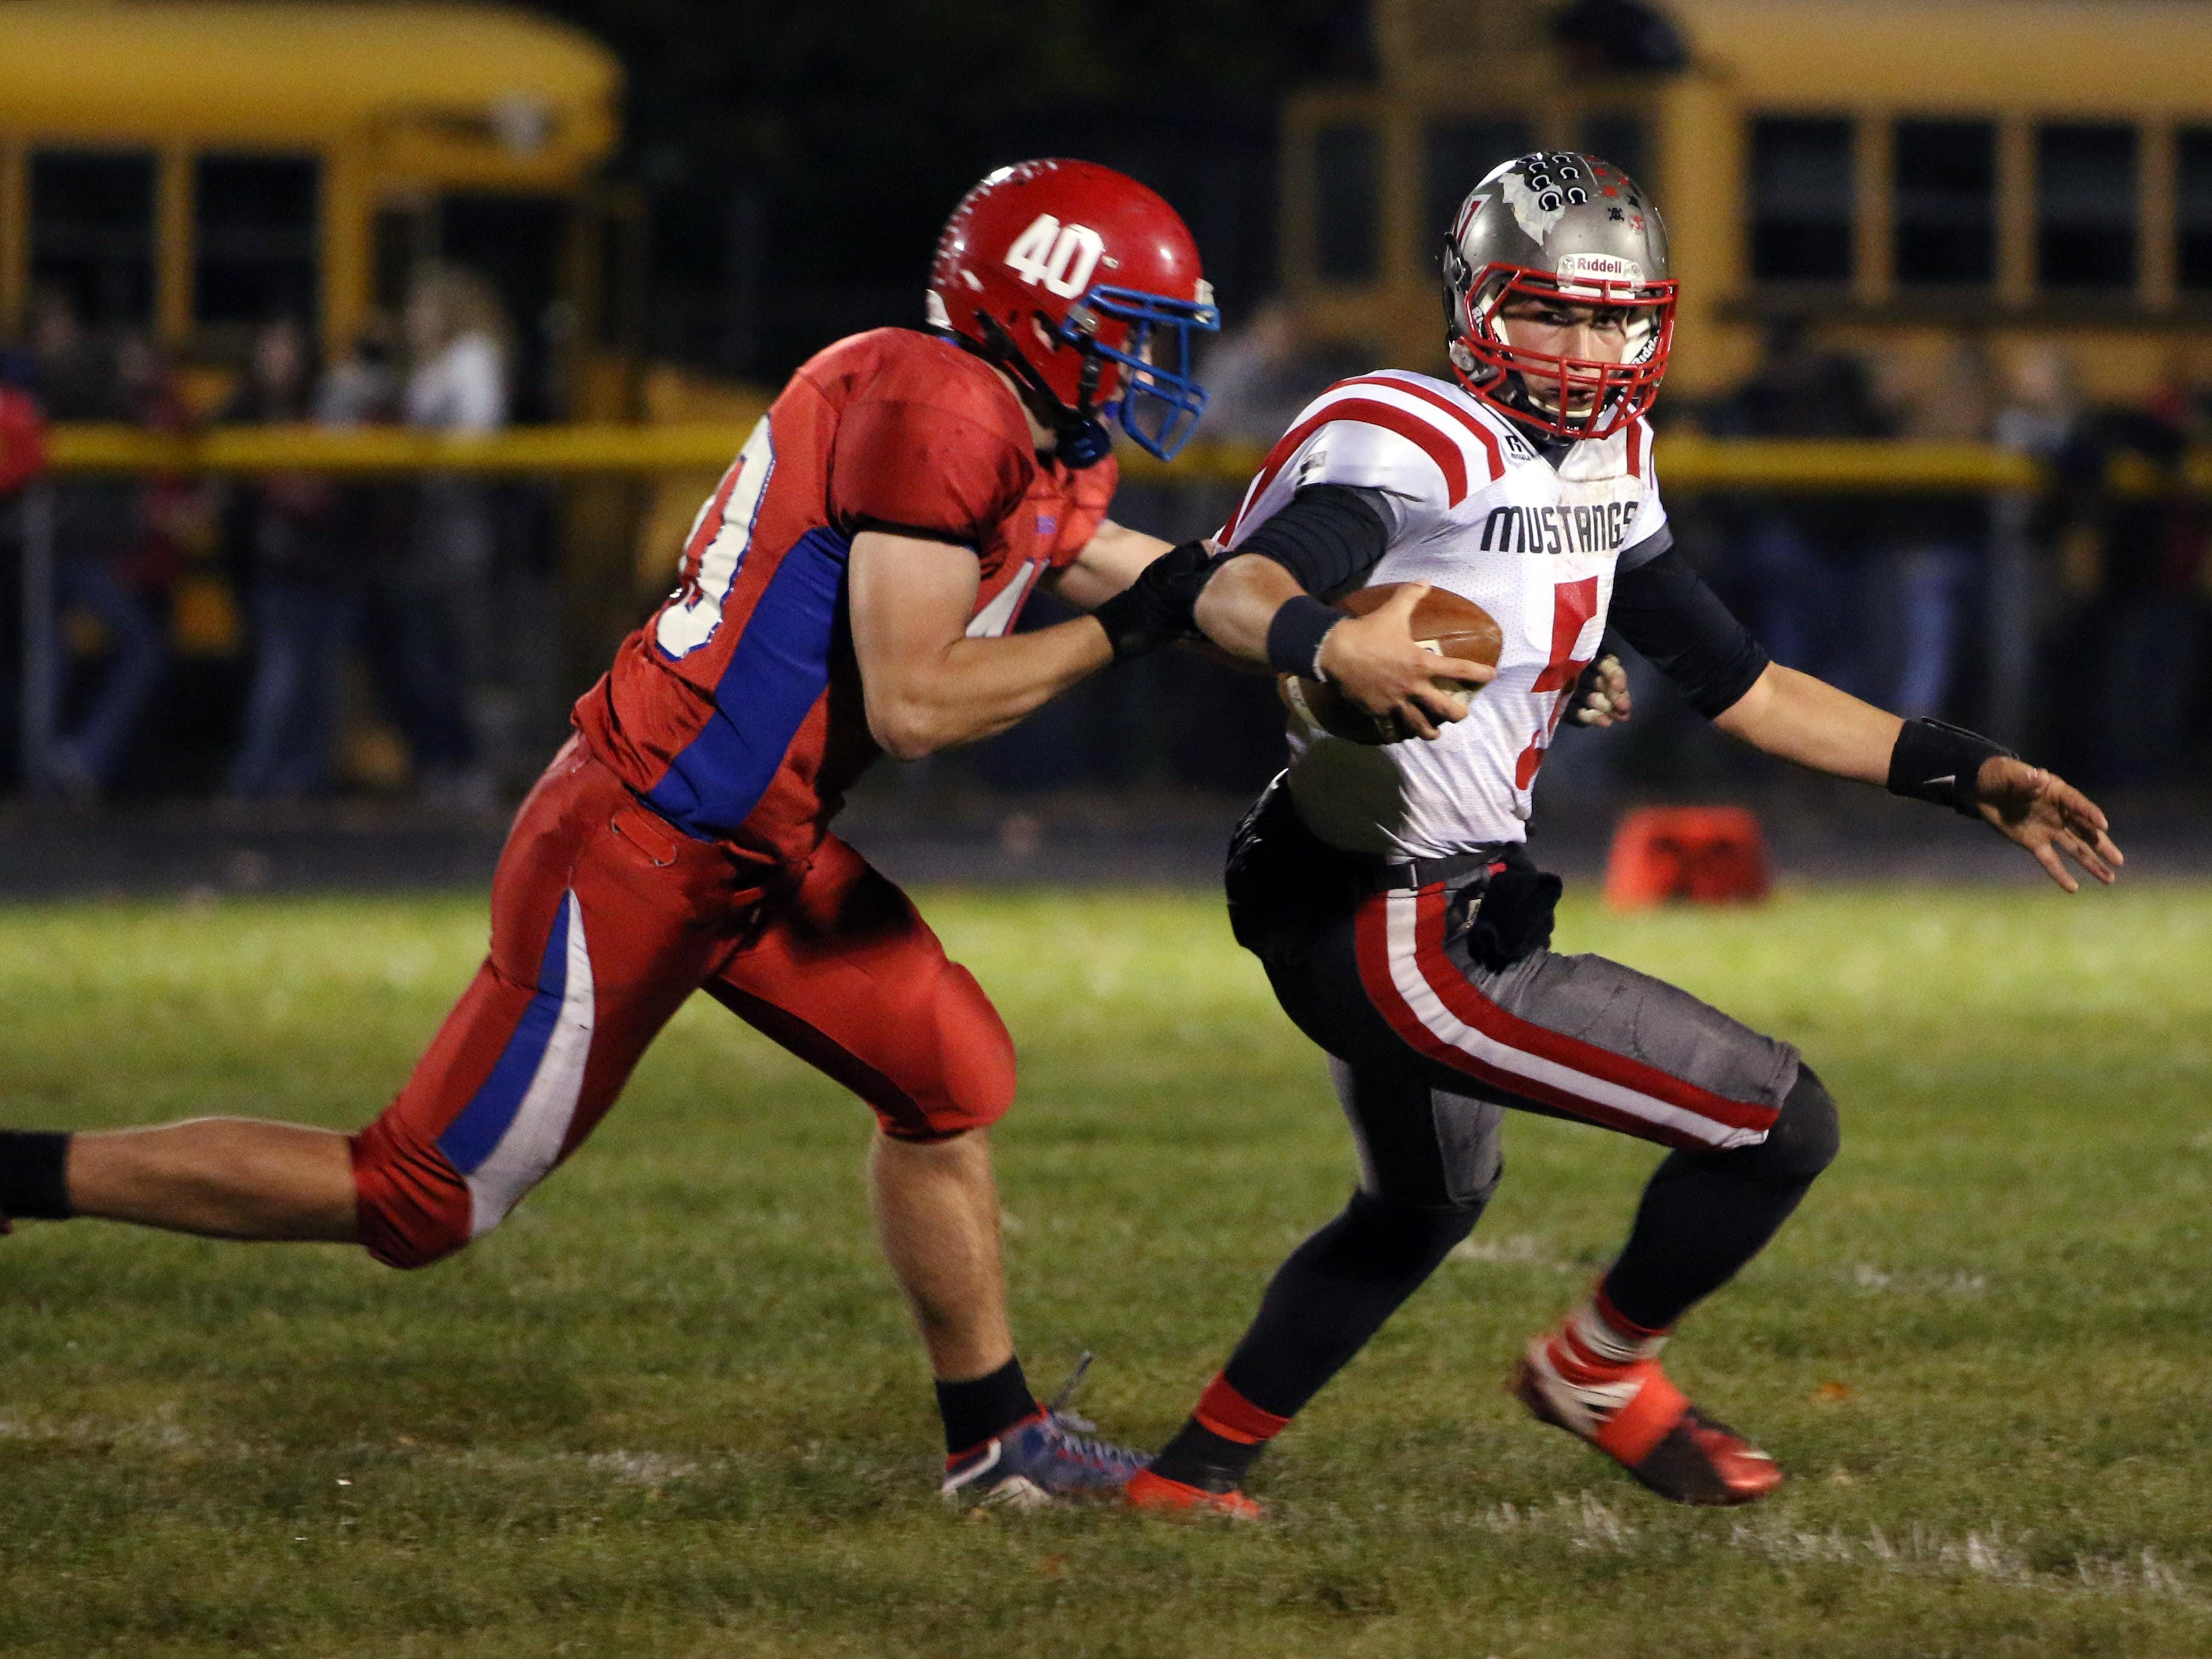 Zane Trace's Aiden Place chases down Westfall's Matt Jude during conference play earlier this season. Place led the area with 13 sacks.